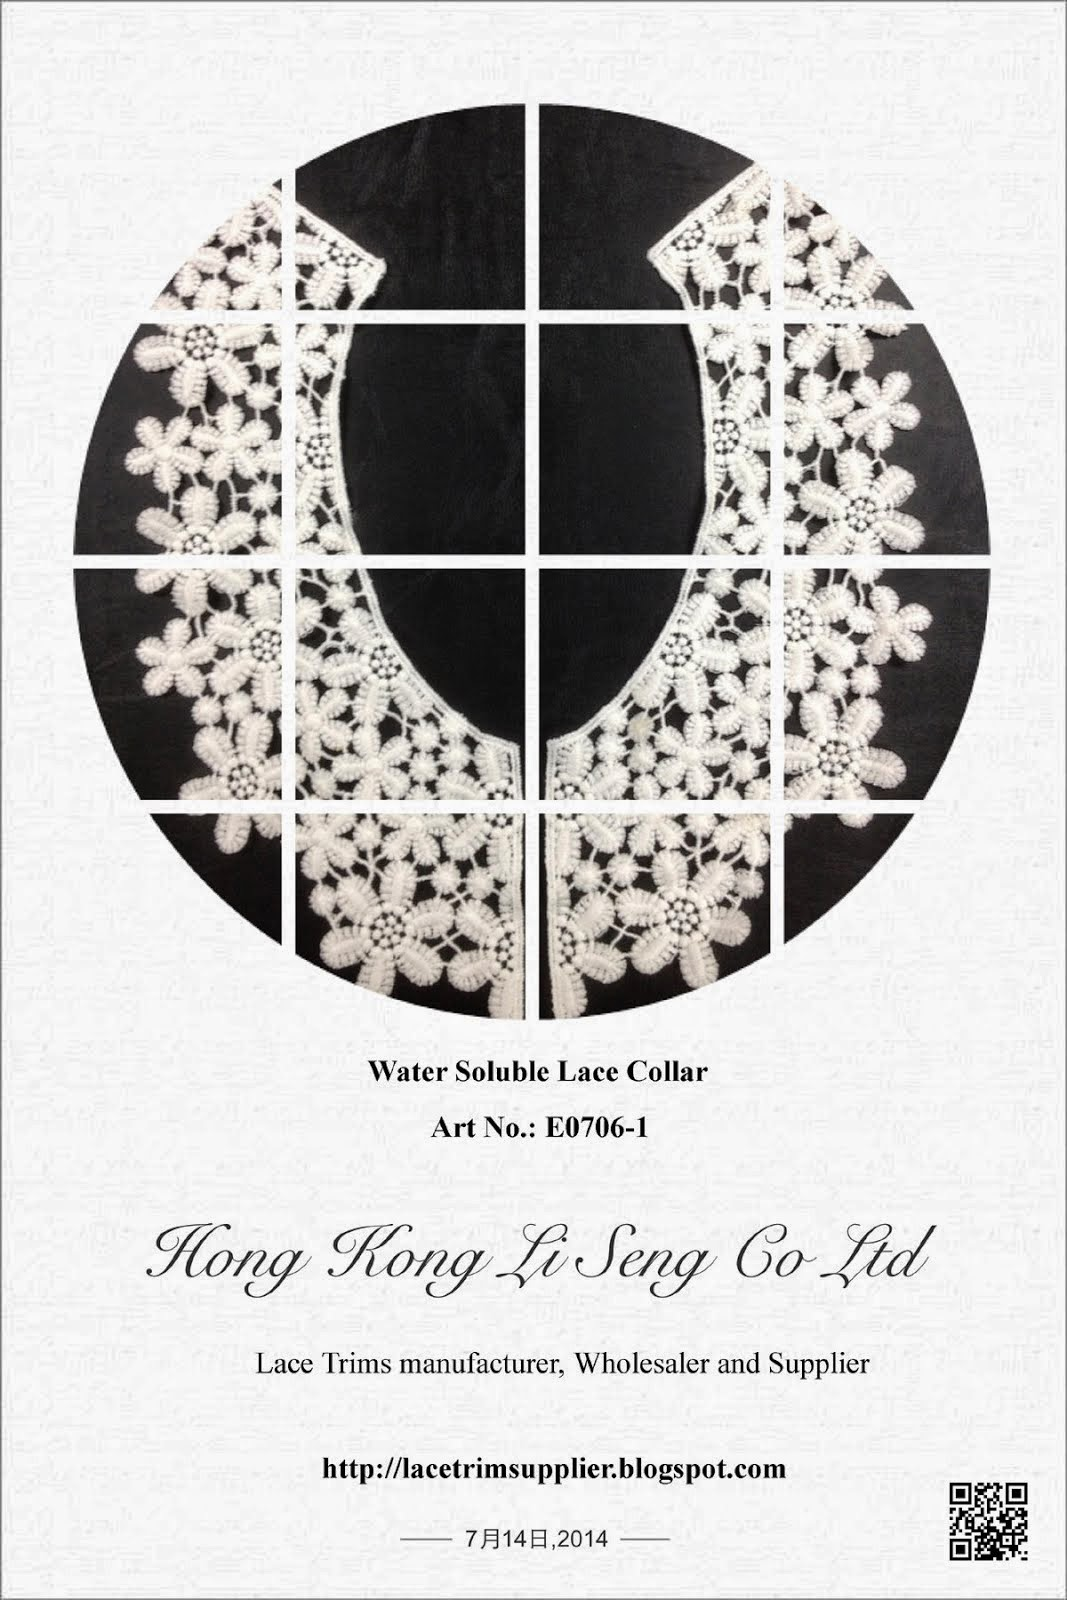 "Water Soluble Lace Collar Manufacturer Wholesaler and Supplier "" Hong Kong Li Seng Co Ltd """